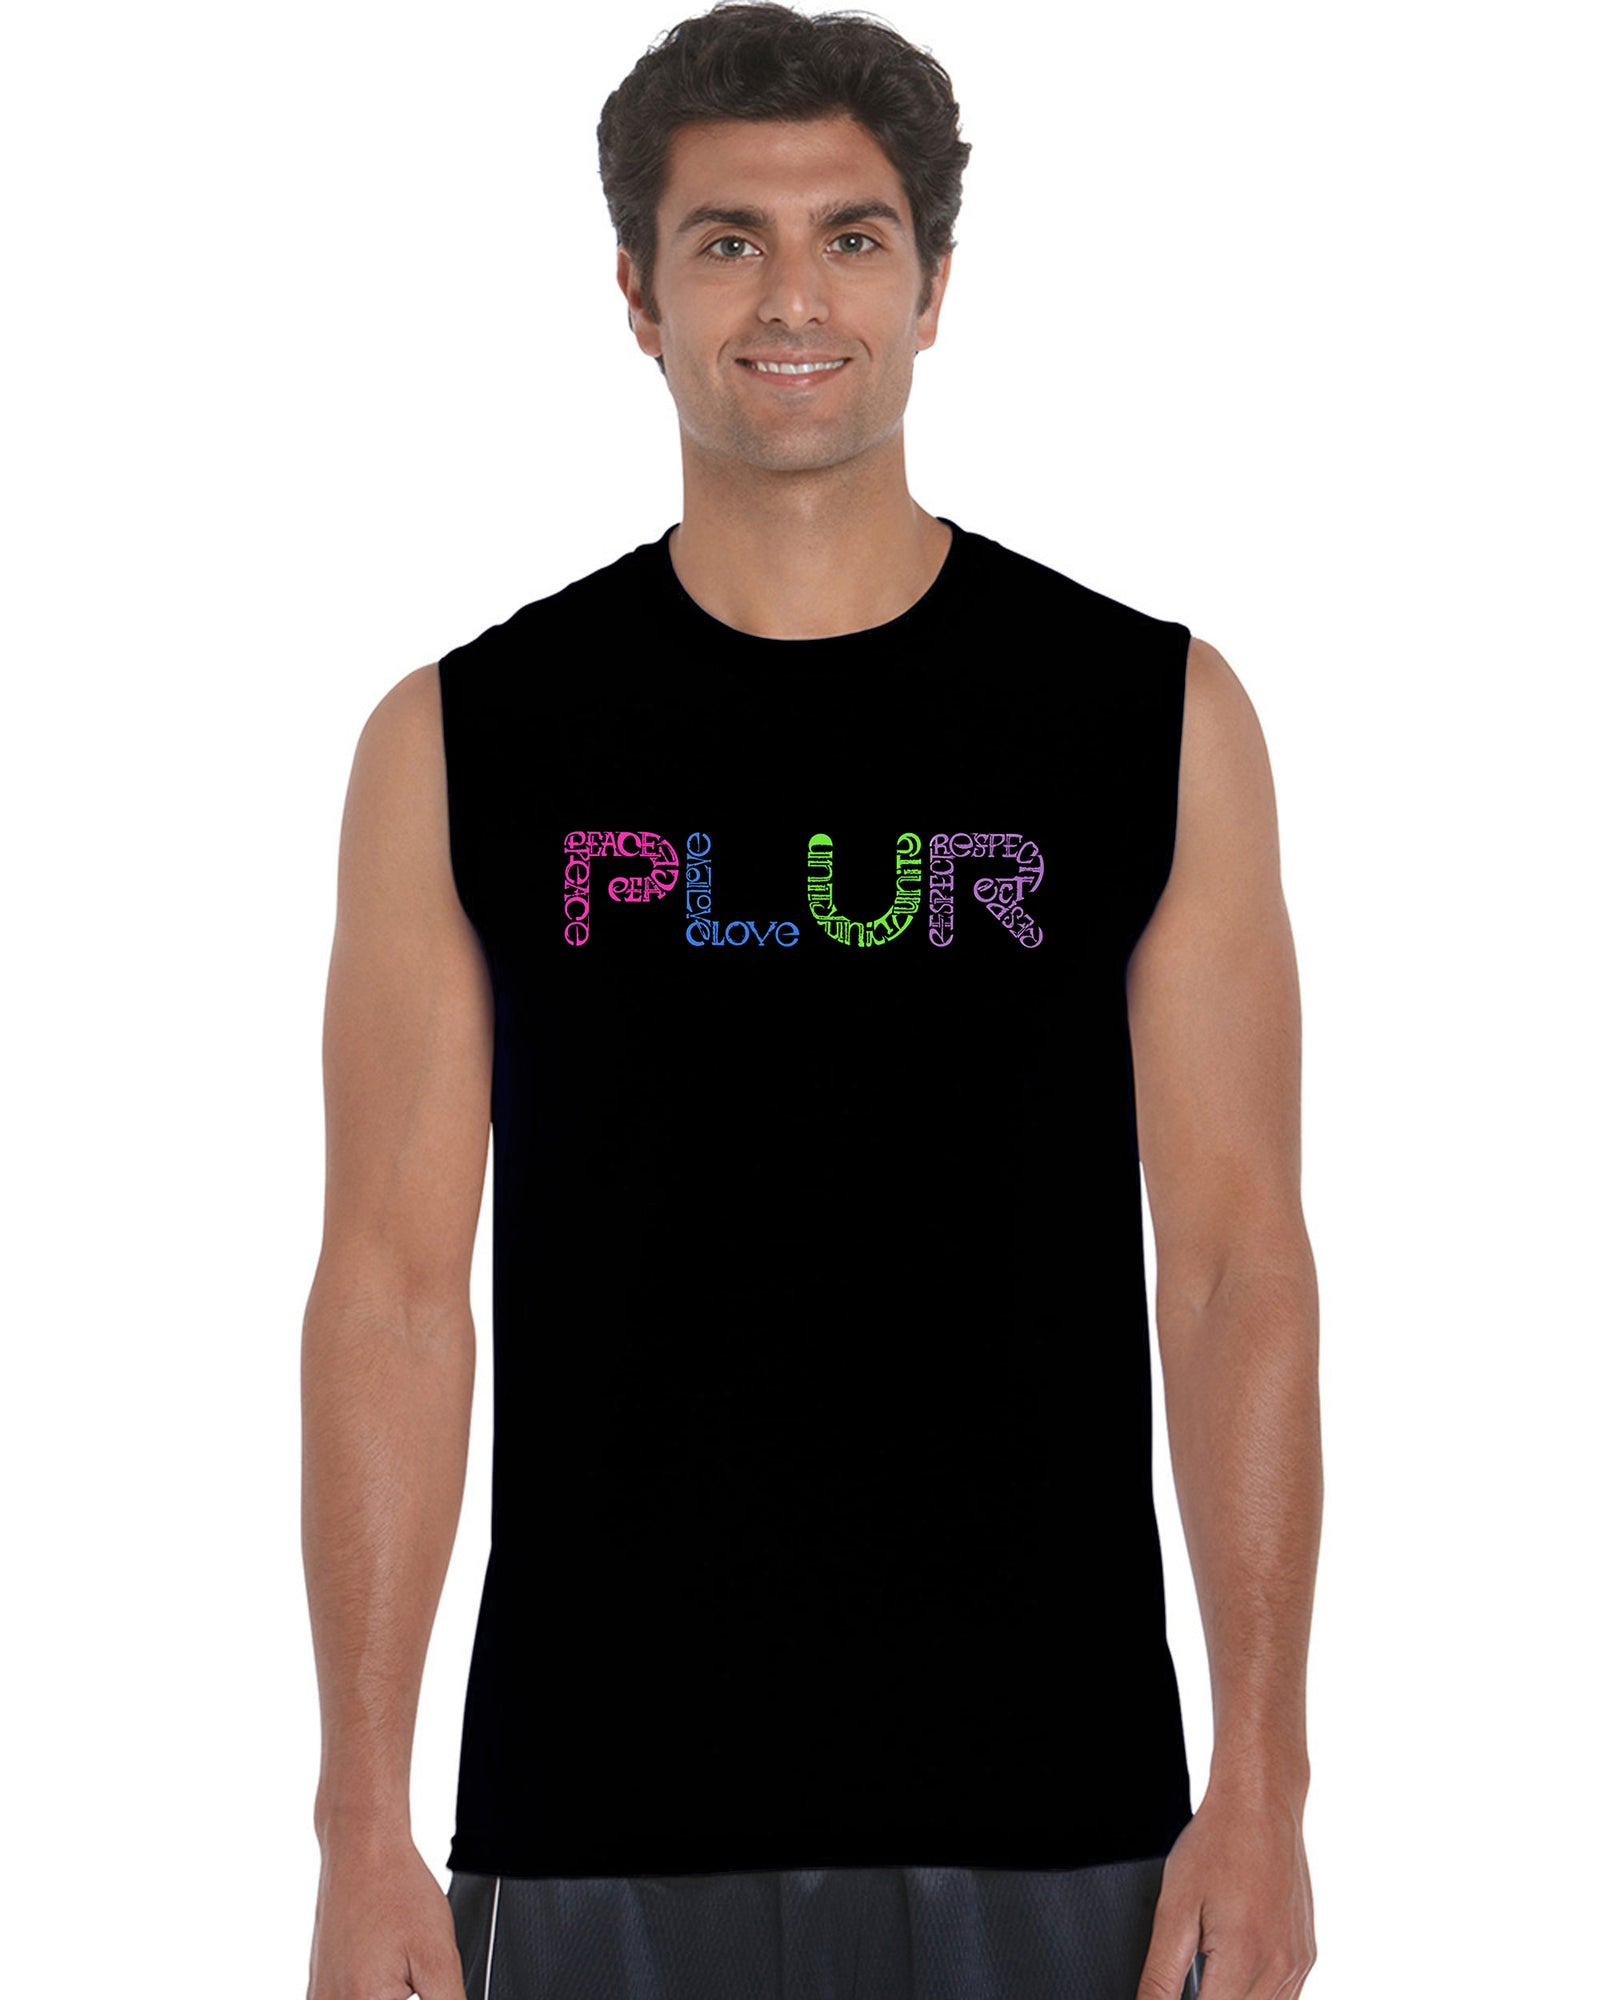 Men's Sleeveless T-shirt - PLUR